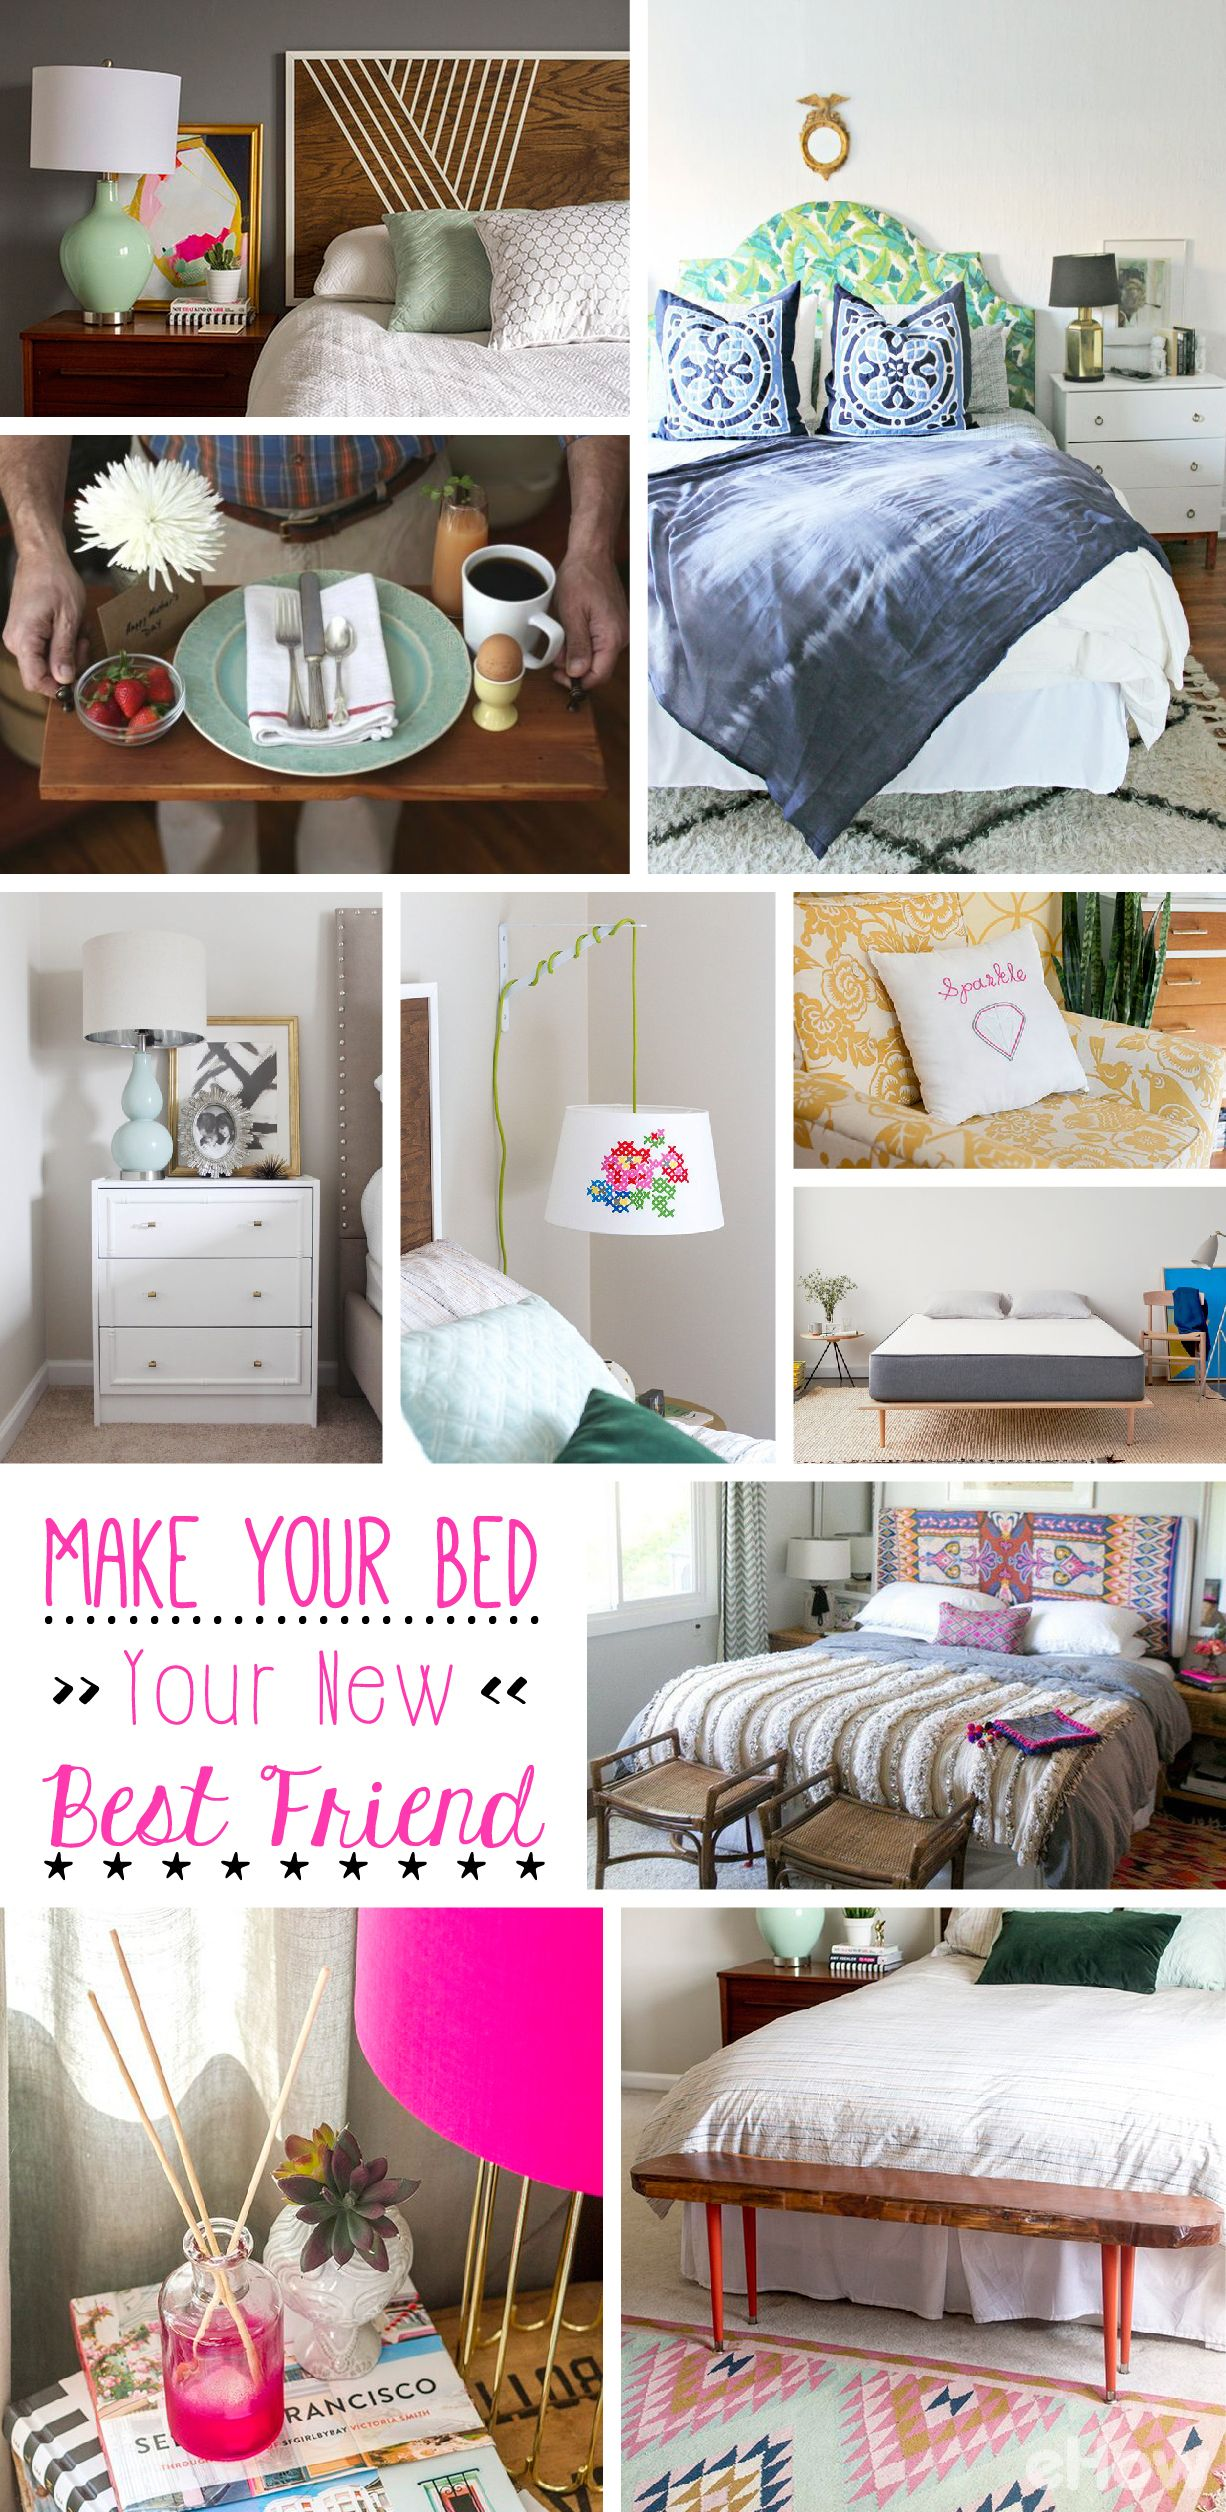 Wedding night bedroom decoration ideas   Ways to Make Your Bed Your New Best Friend  Moroccan wedding